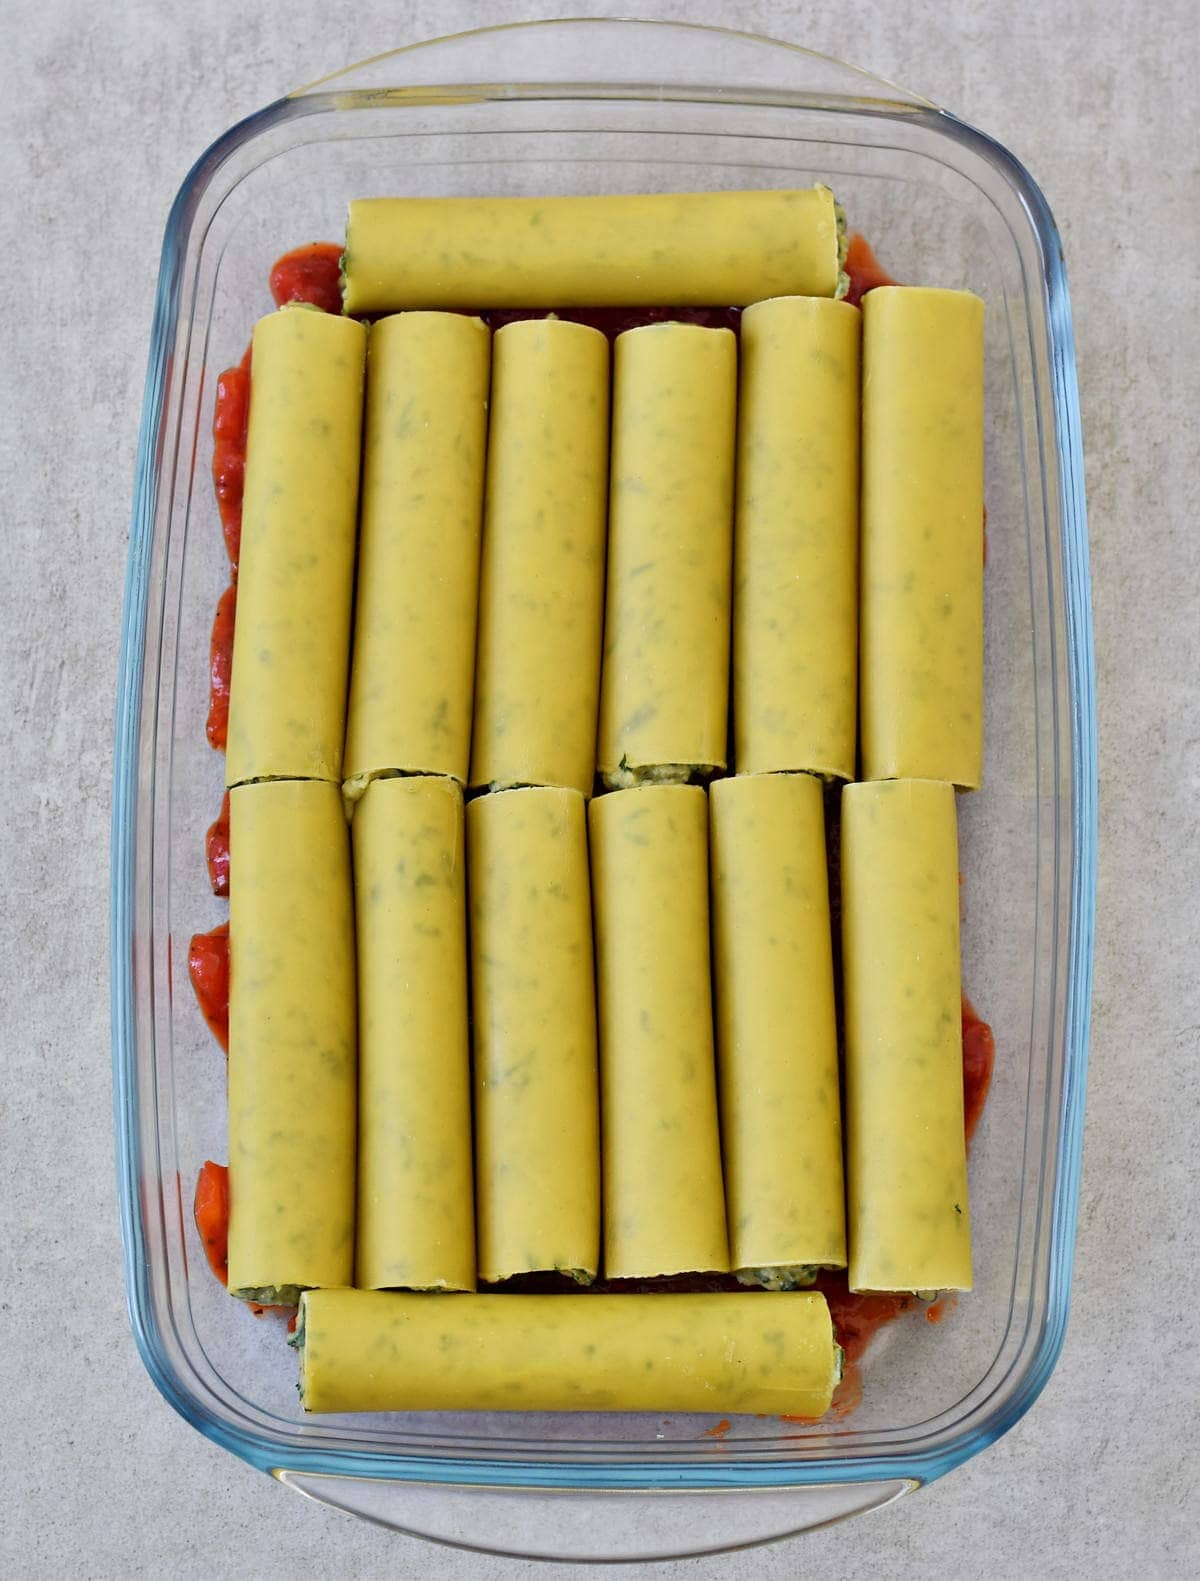 14 ricotta and spinach cannelloni tubes in a casserole dish